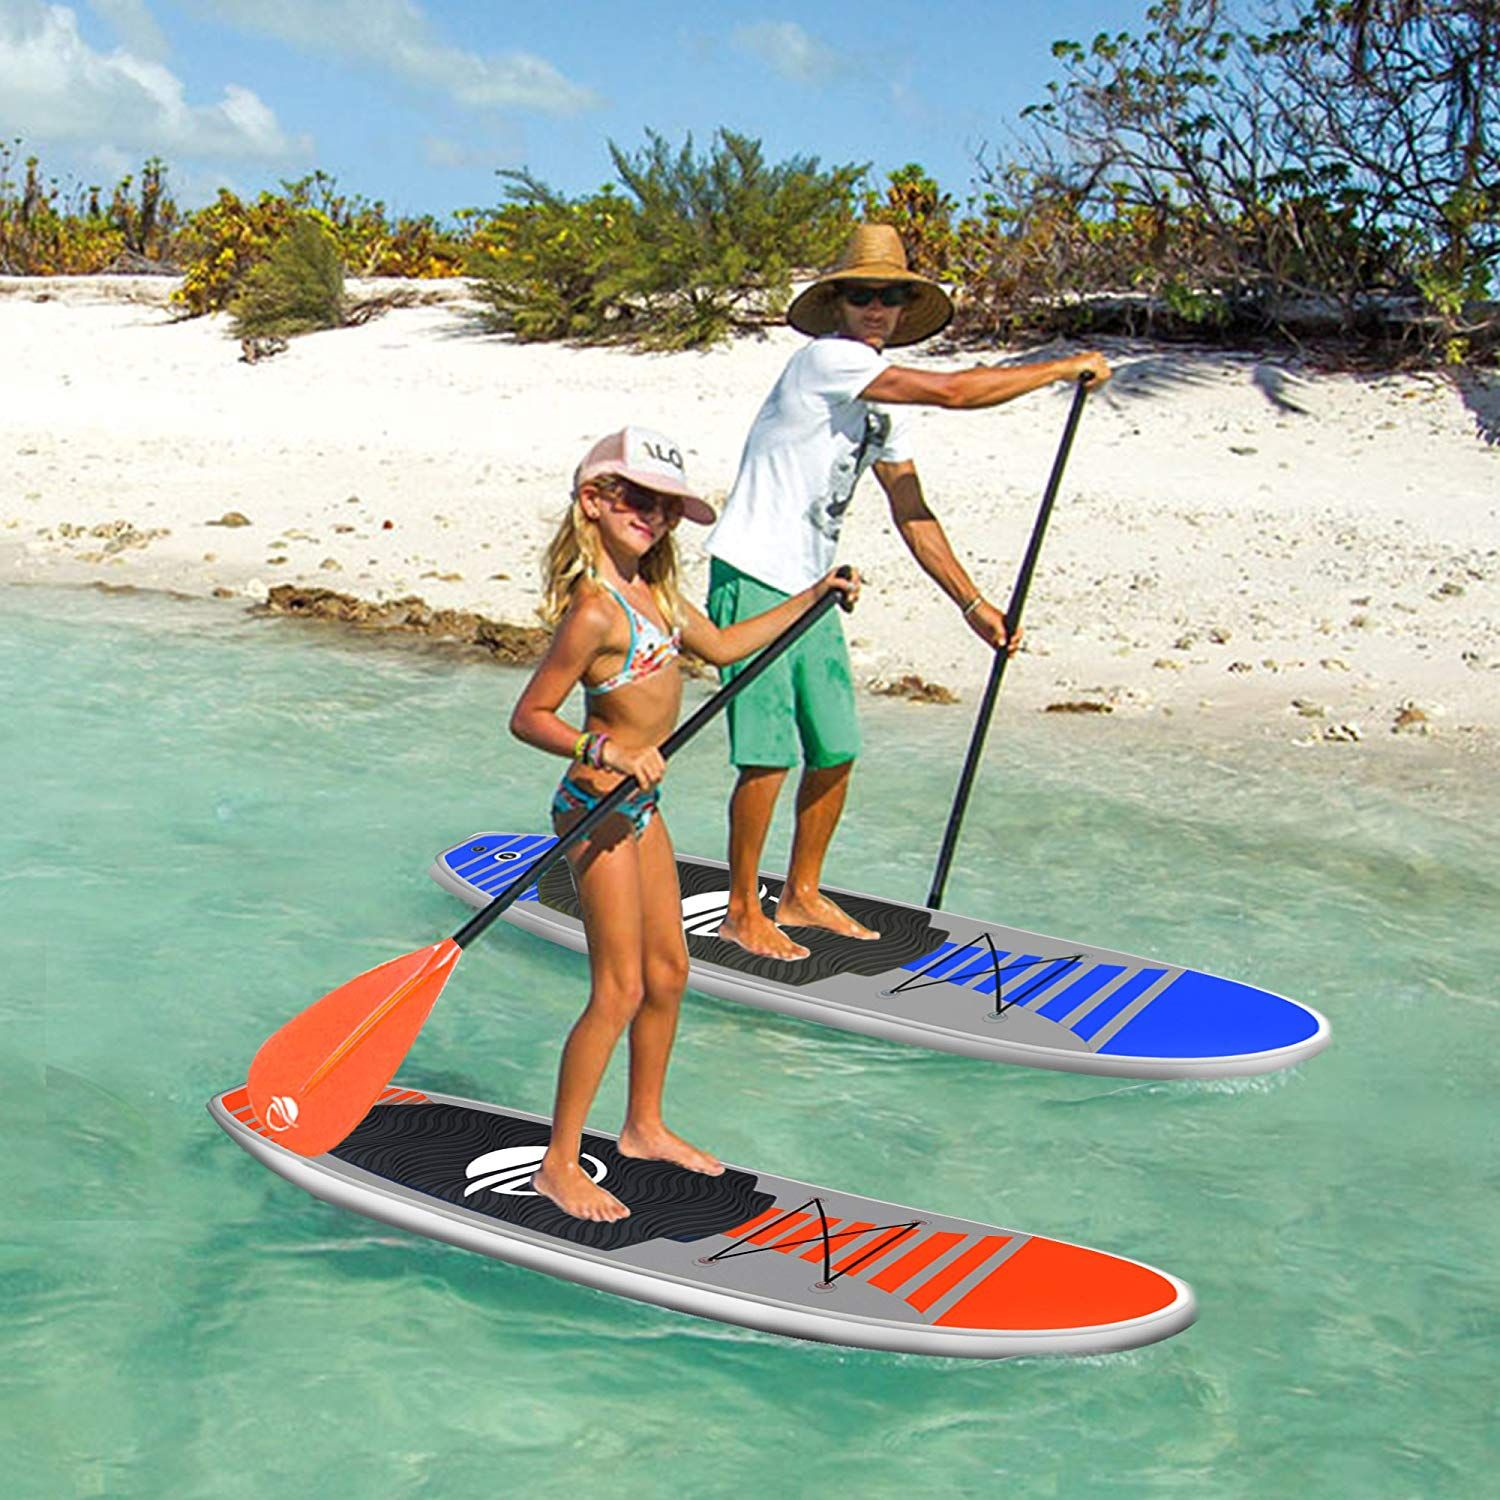 Serenelife Premium Inflatable Stand Up Paddle Board 6 Inches Thick With Sup Accessories Carry Ba Paddle Boarding Standup Paddle Inflatable Paddle Board